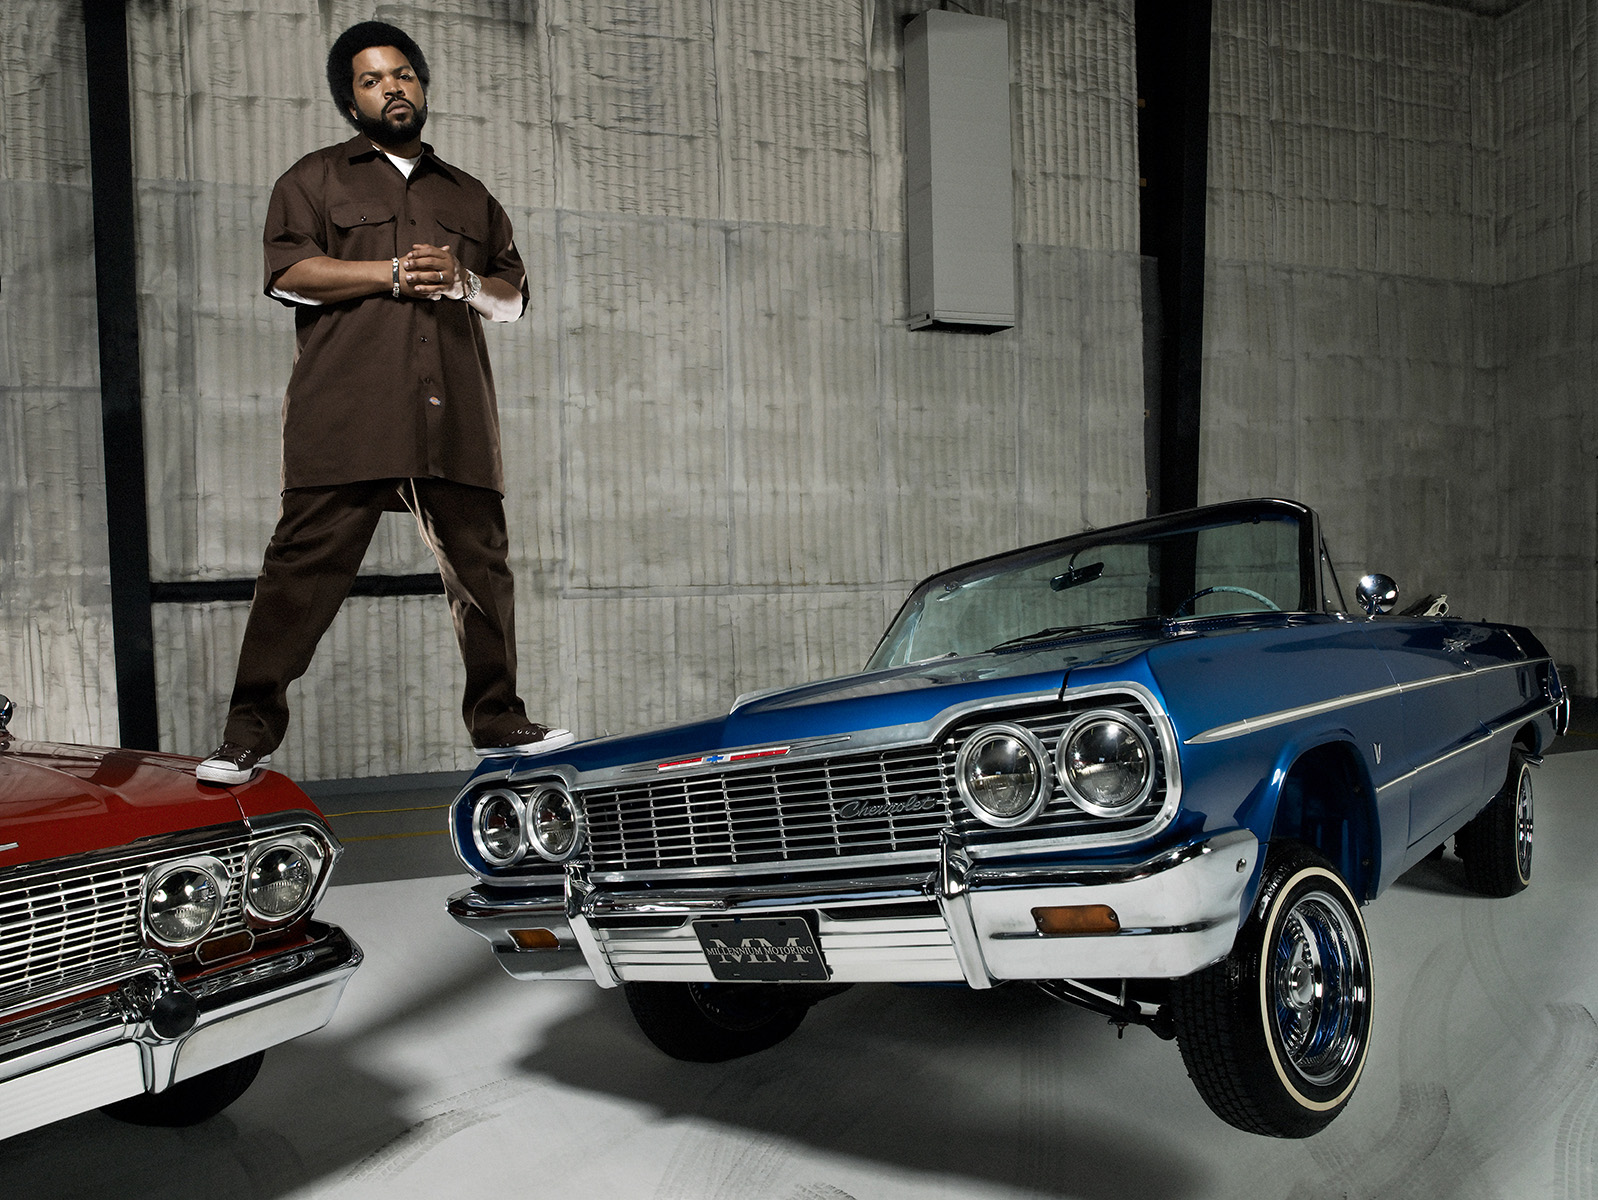 portrait of Rapper Ice Cube photographed by Scott Council